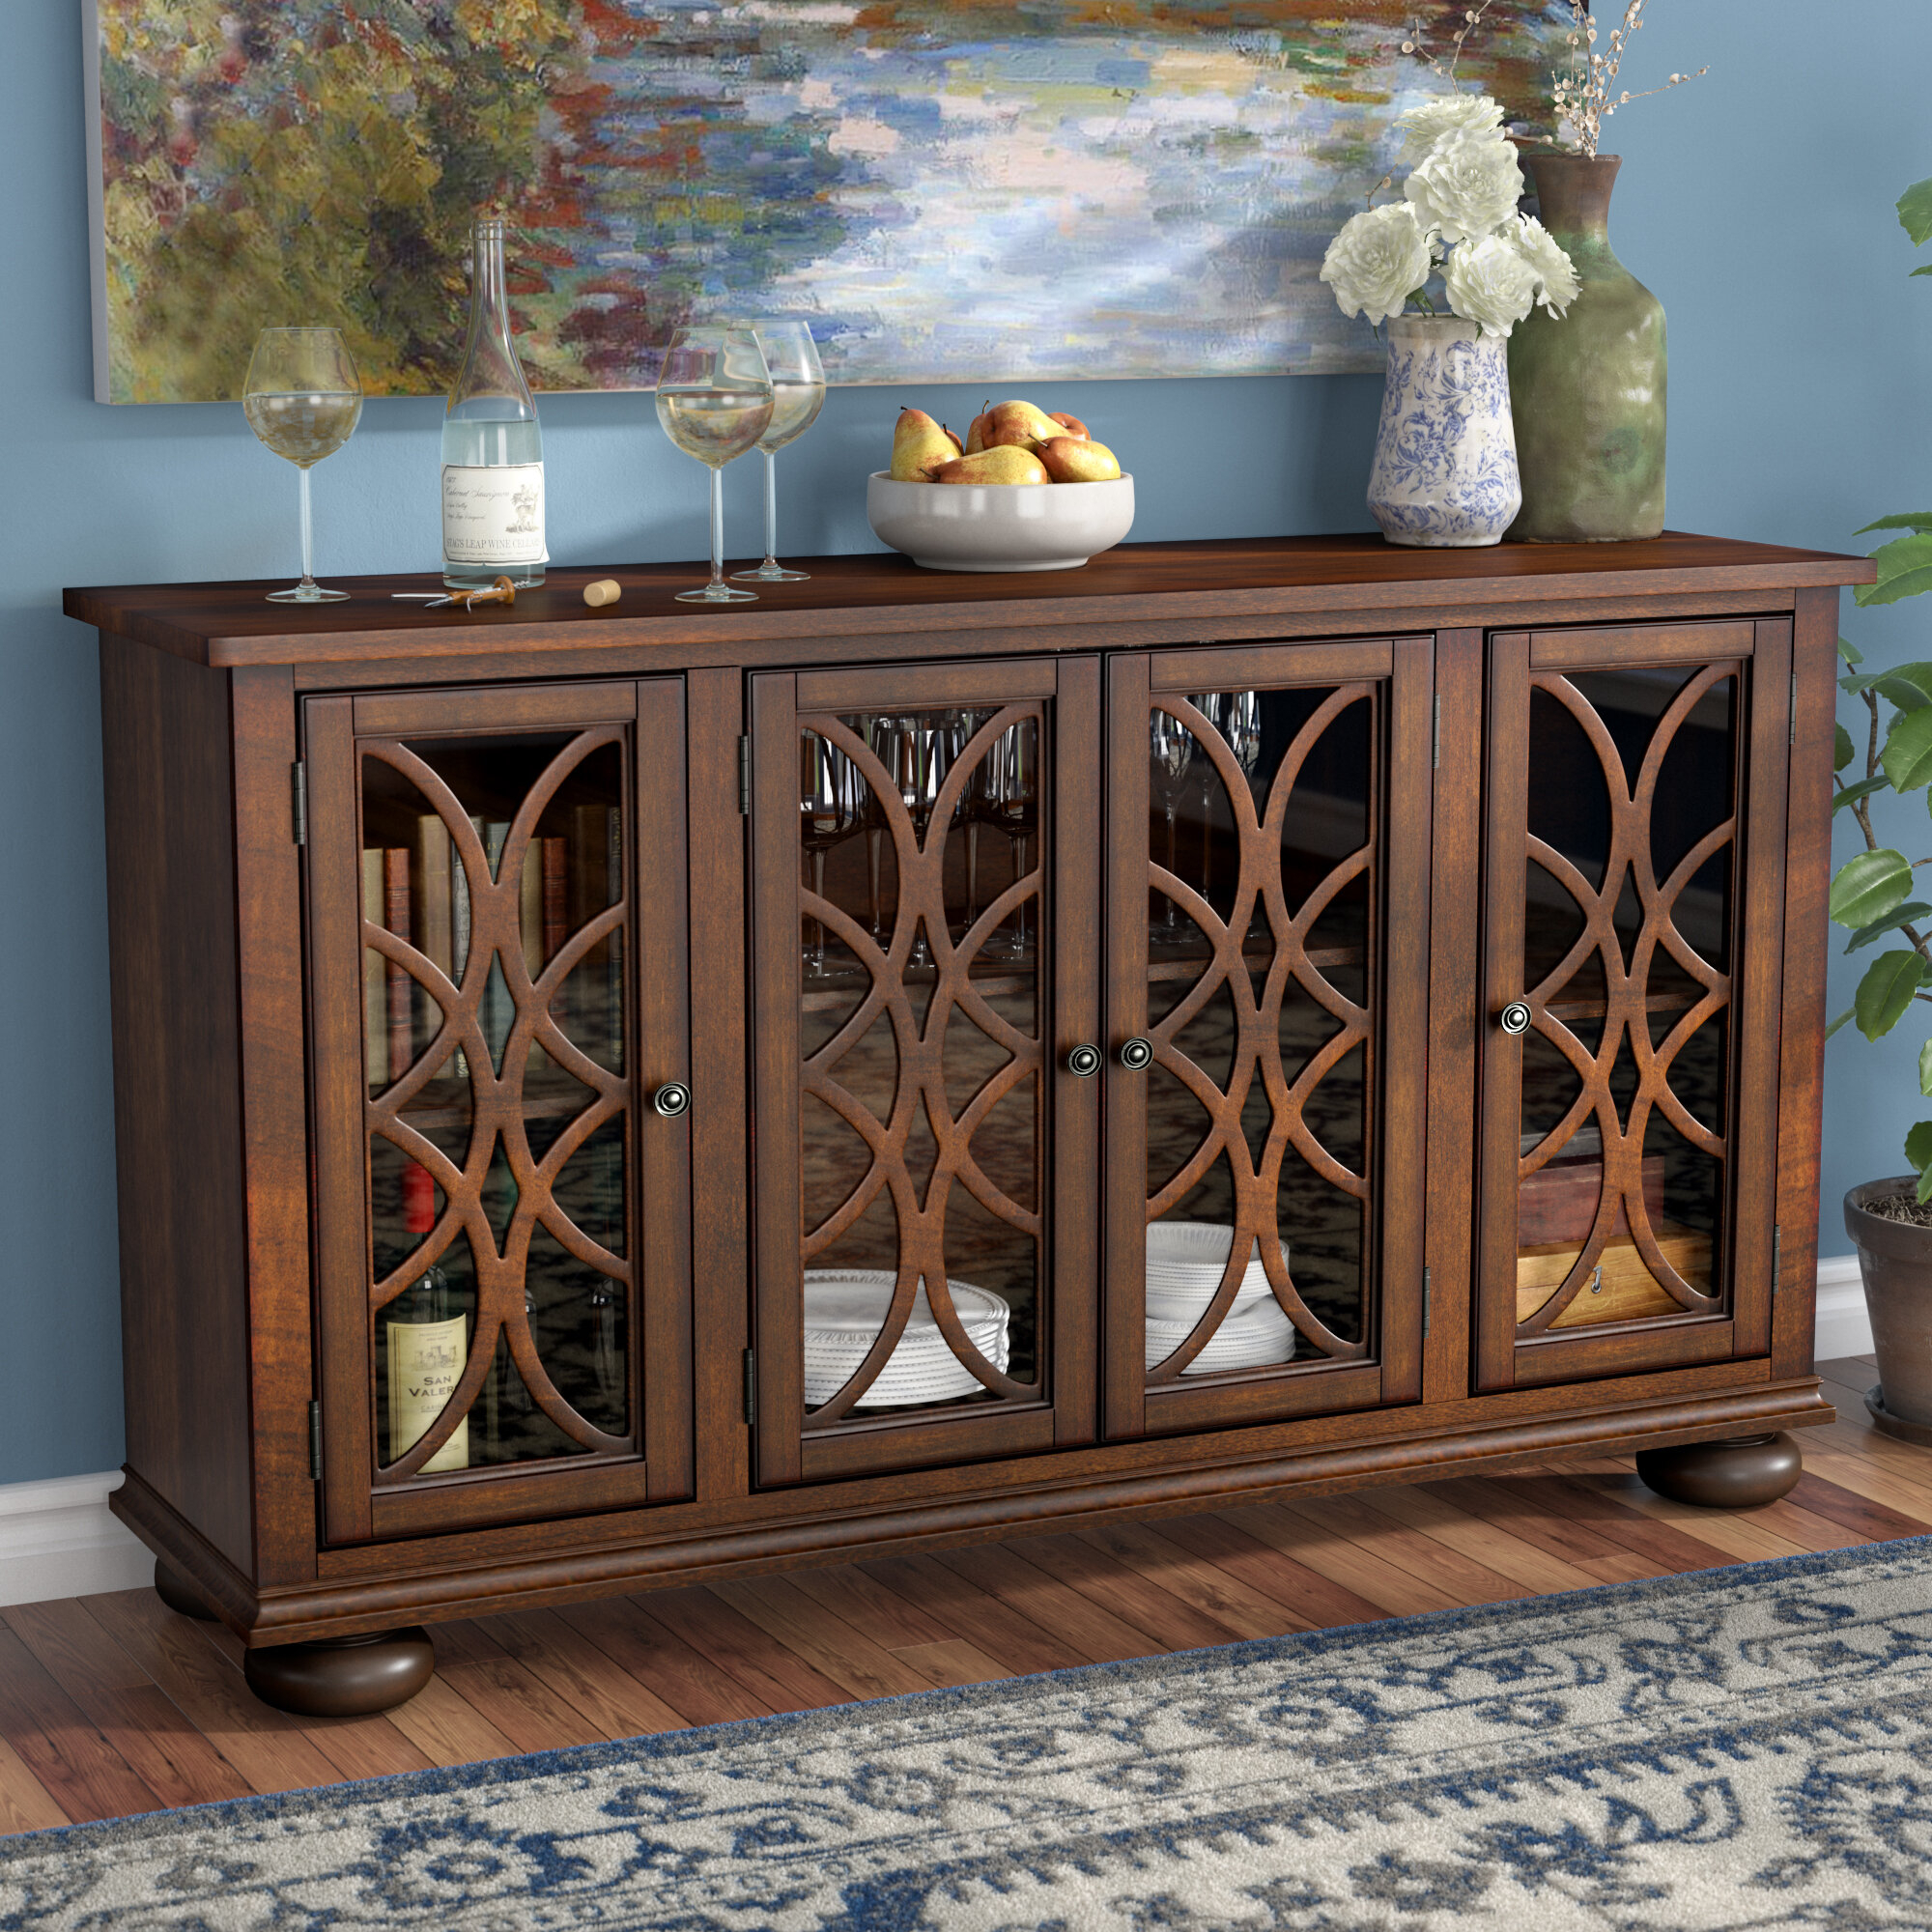 Harkness Sideboard Intended For Saint Gratien Sideboards (View 12 of 30)